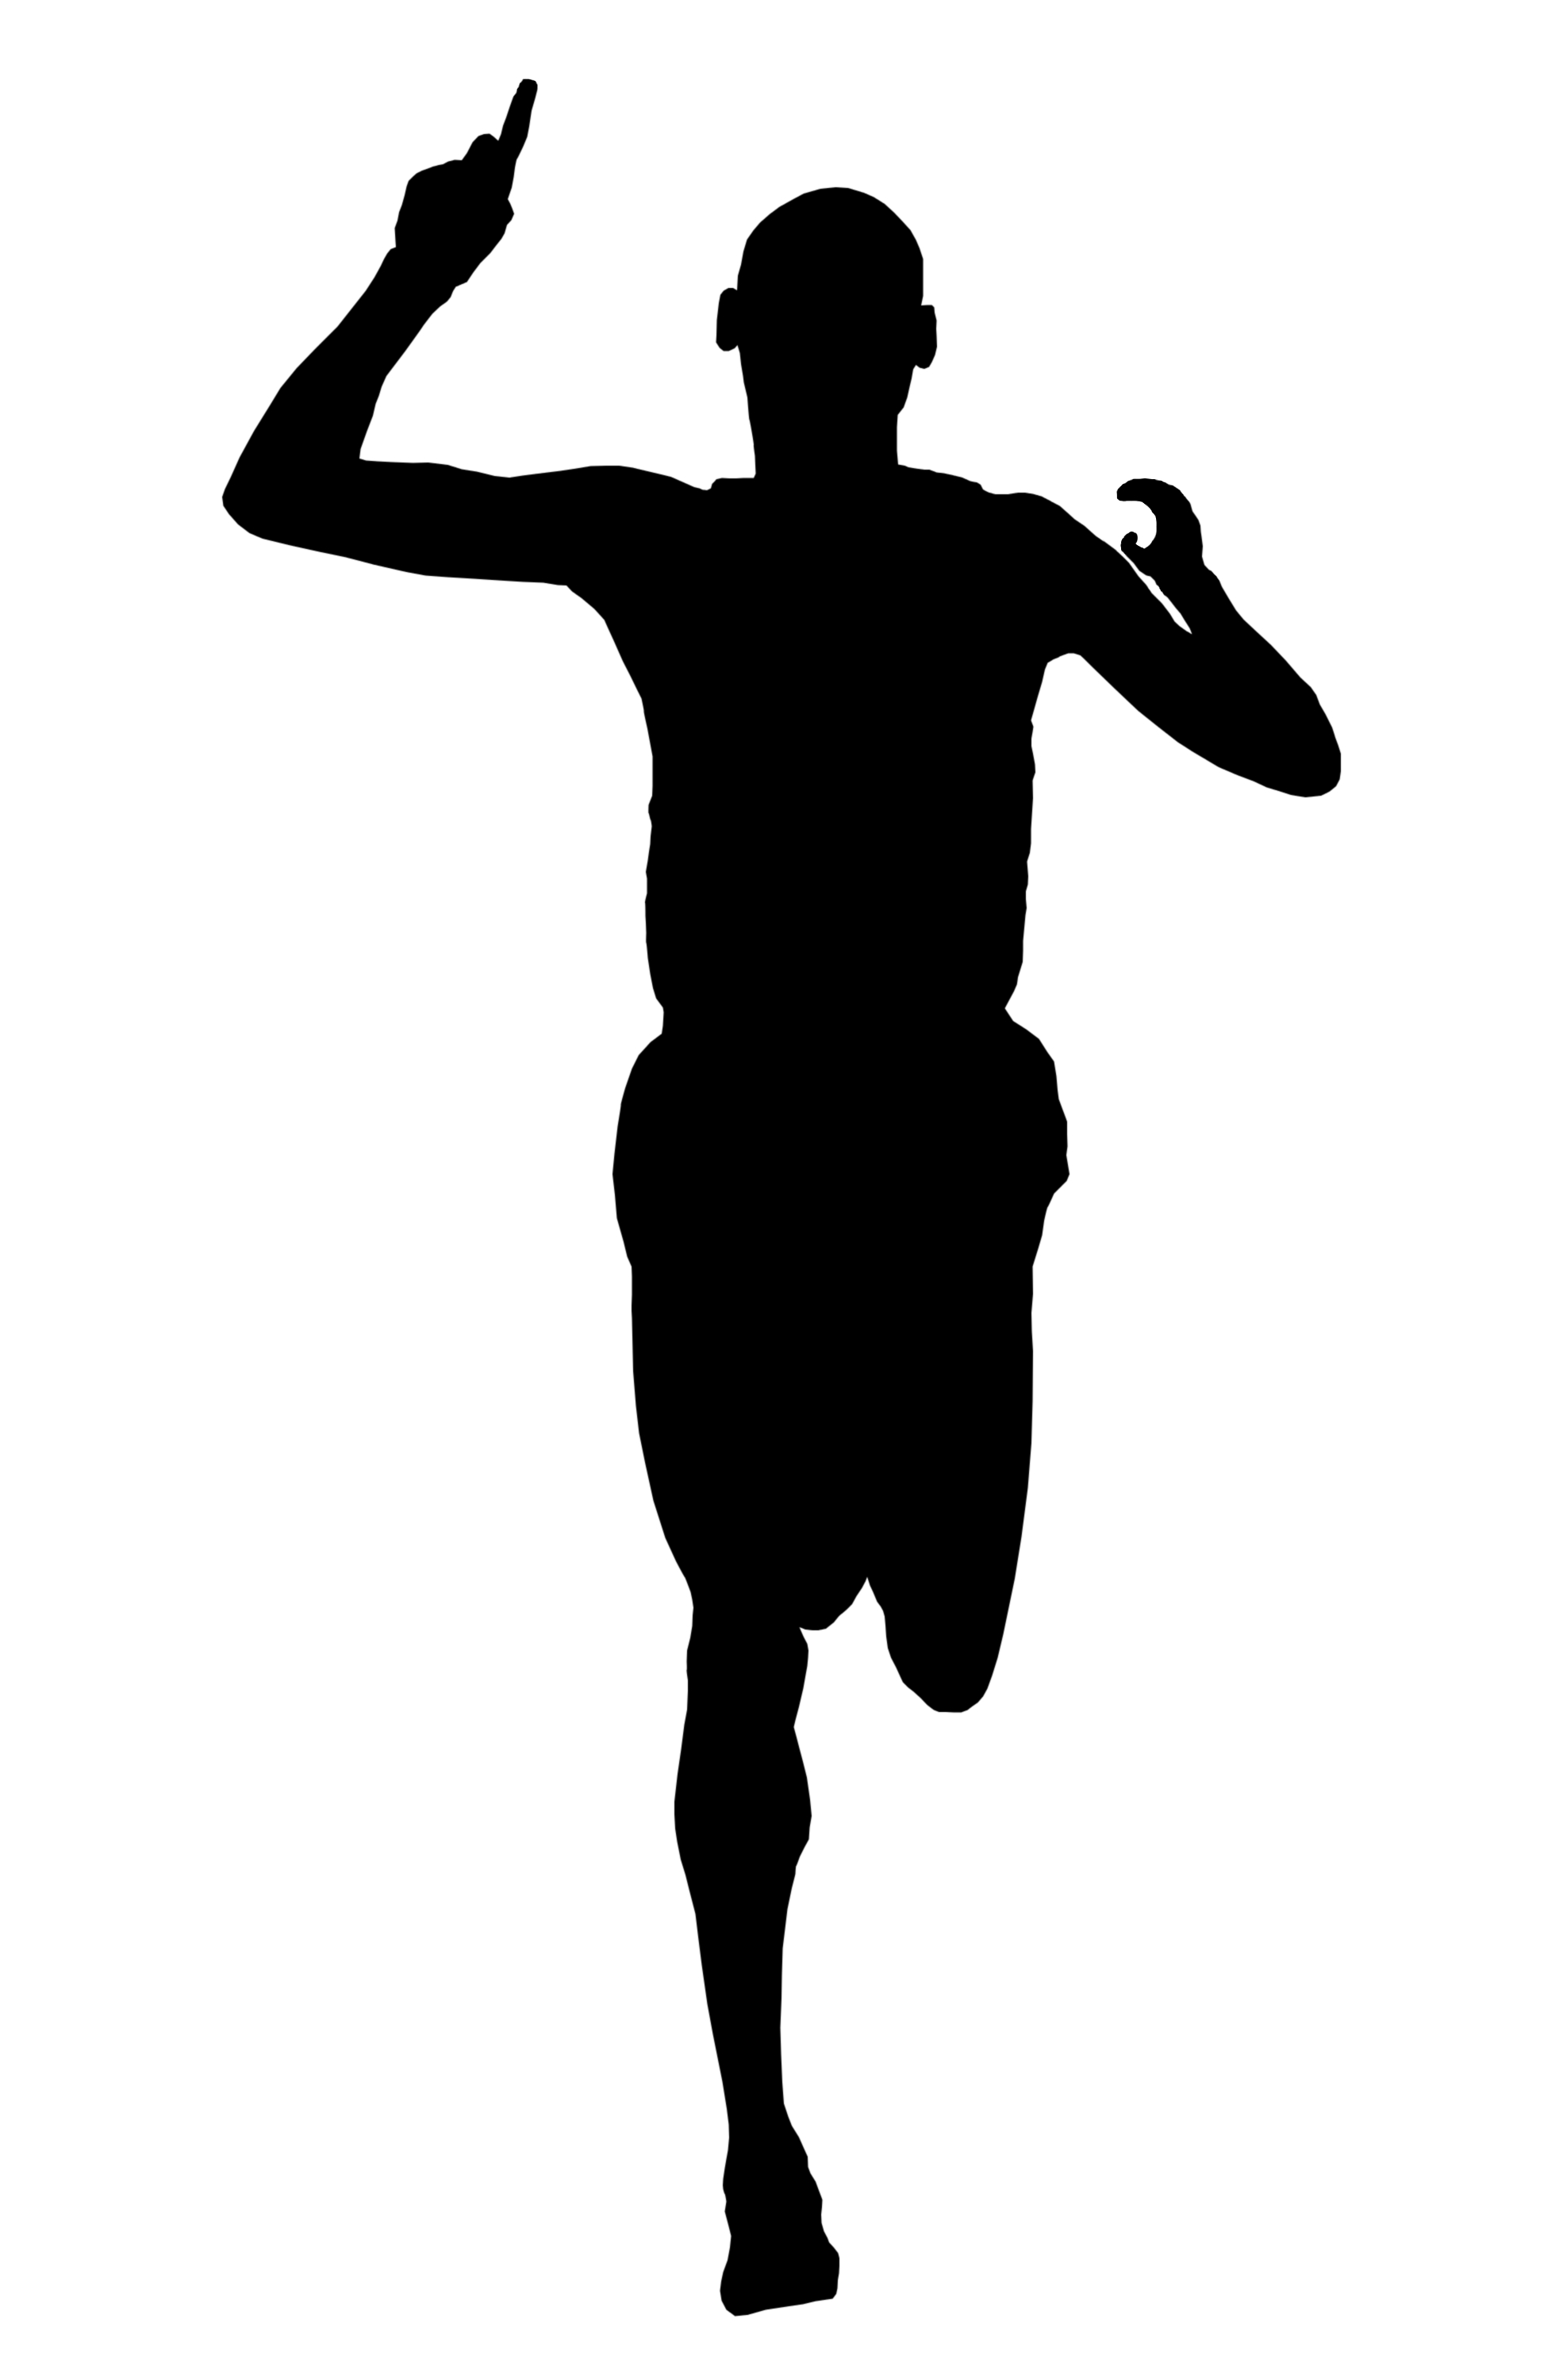 Running Silhouette Clipart